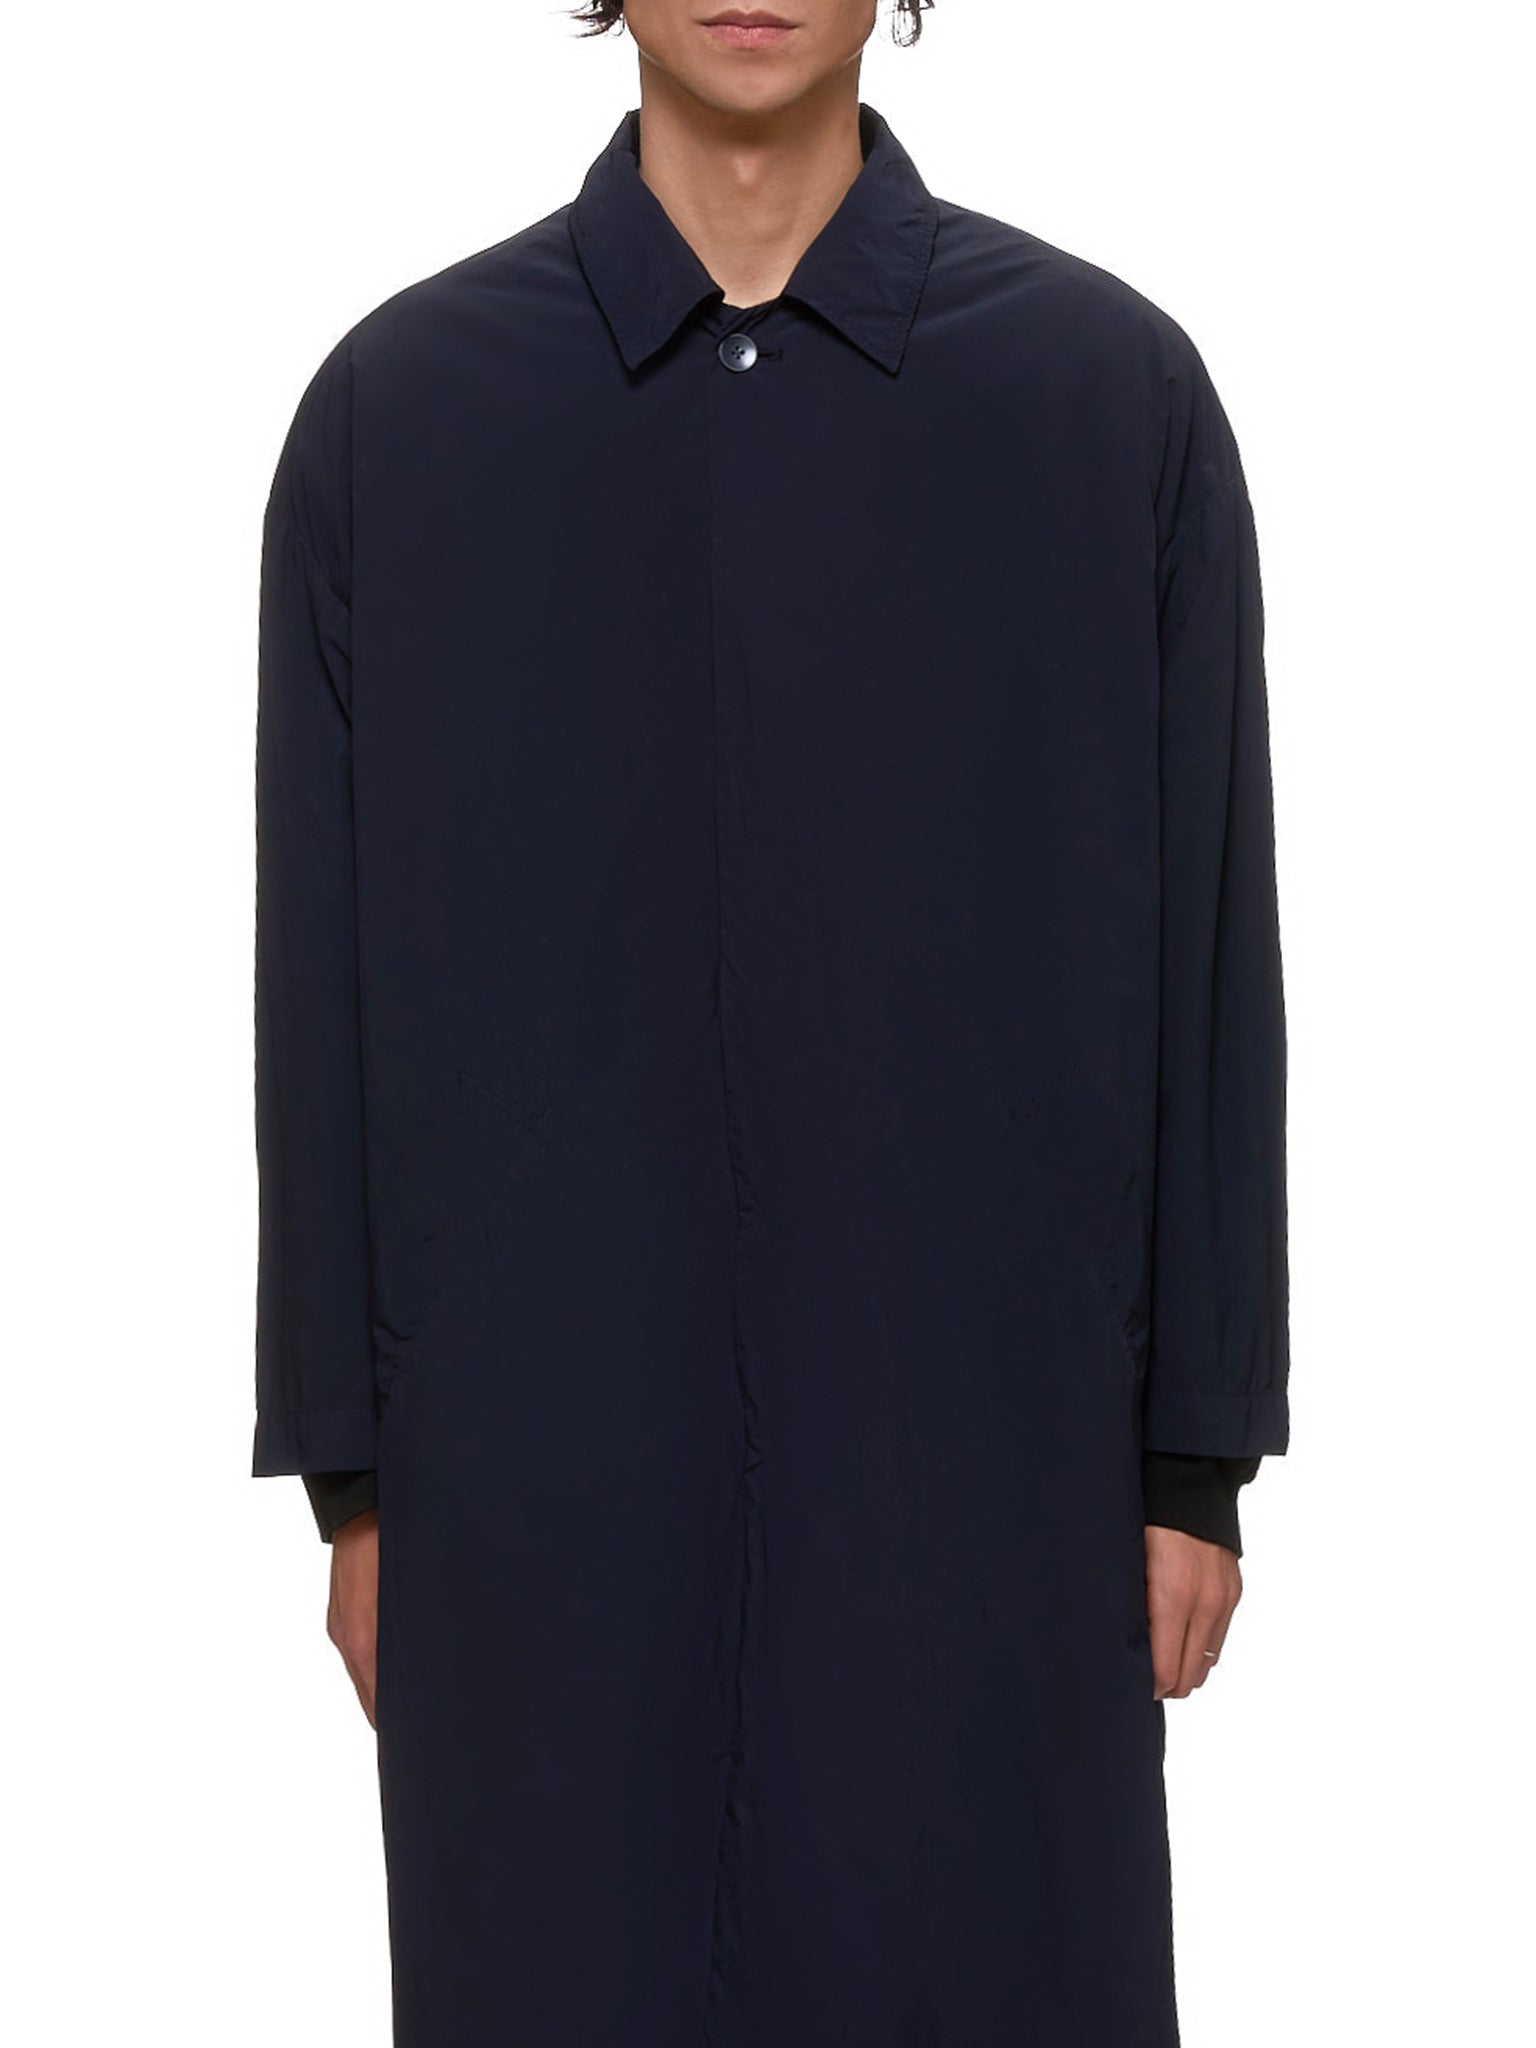 Aton Coat - Hlorenzo Detail 1